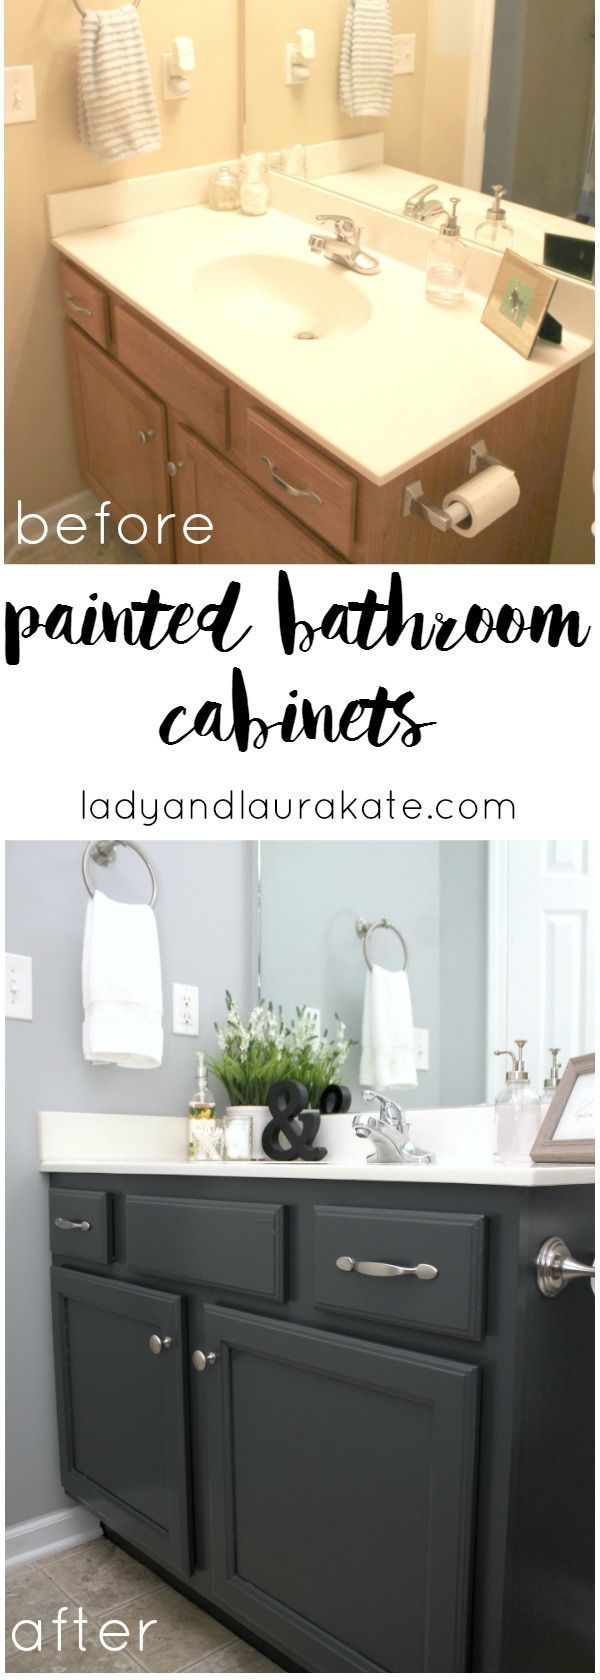 How to paint bathroom cabinets - Diy Painted Bathroom Cabinets It S Super Simple To Achieve In This How To With Homemade